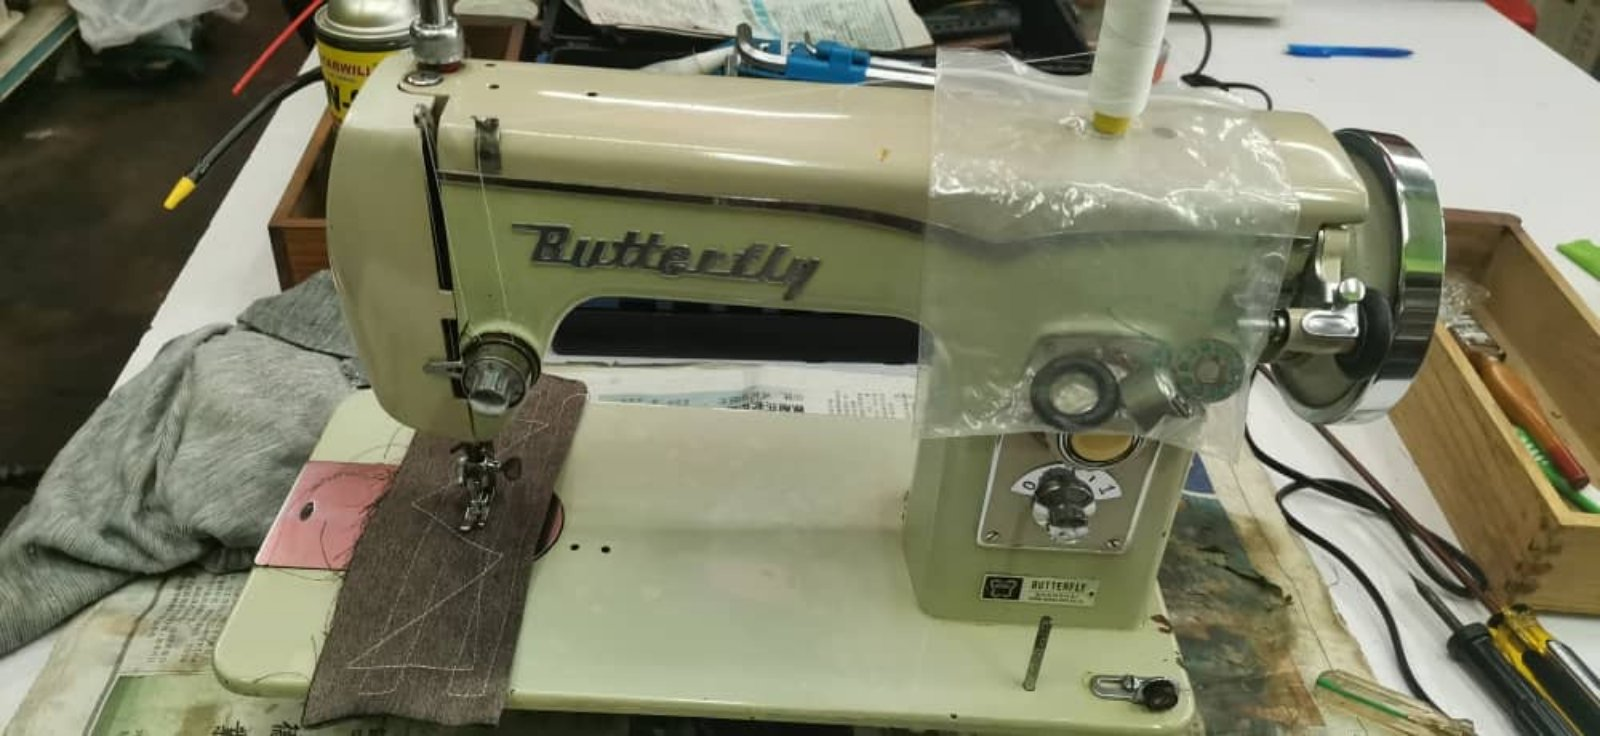 Repair Sevis Antique Butterfly Sewing Machine